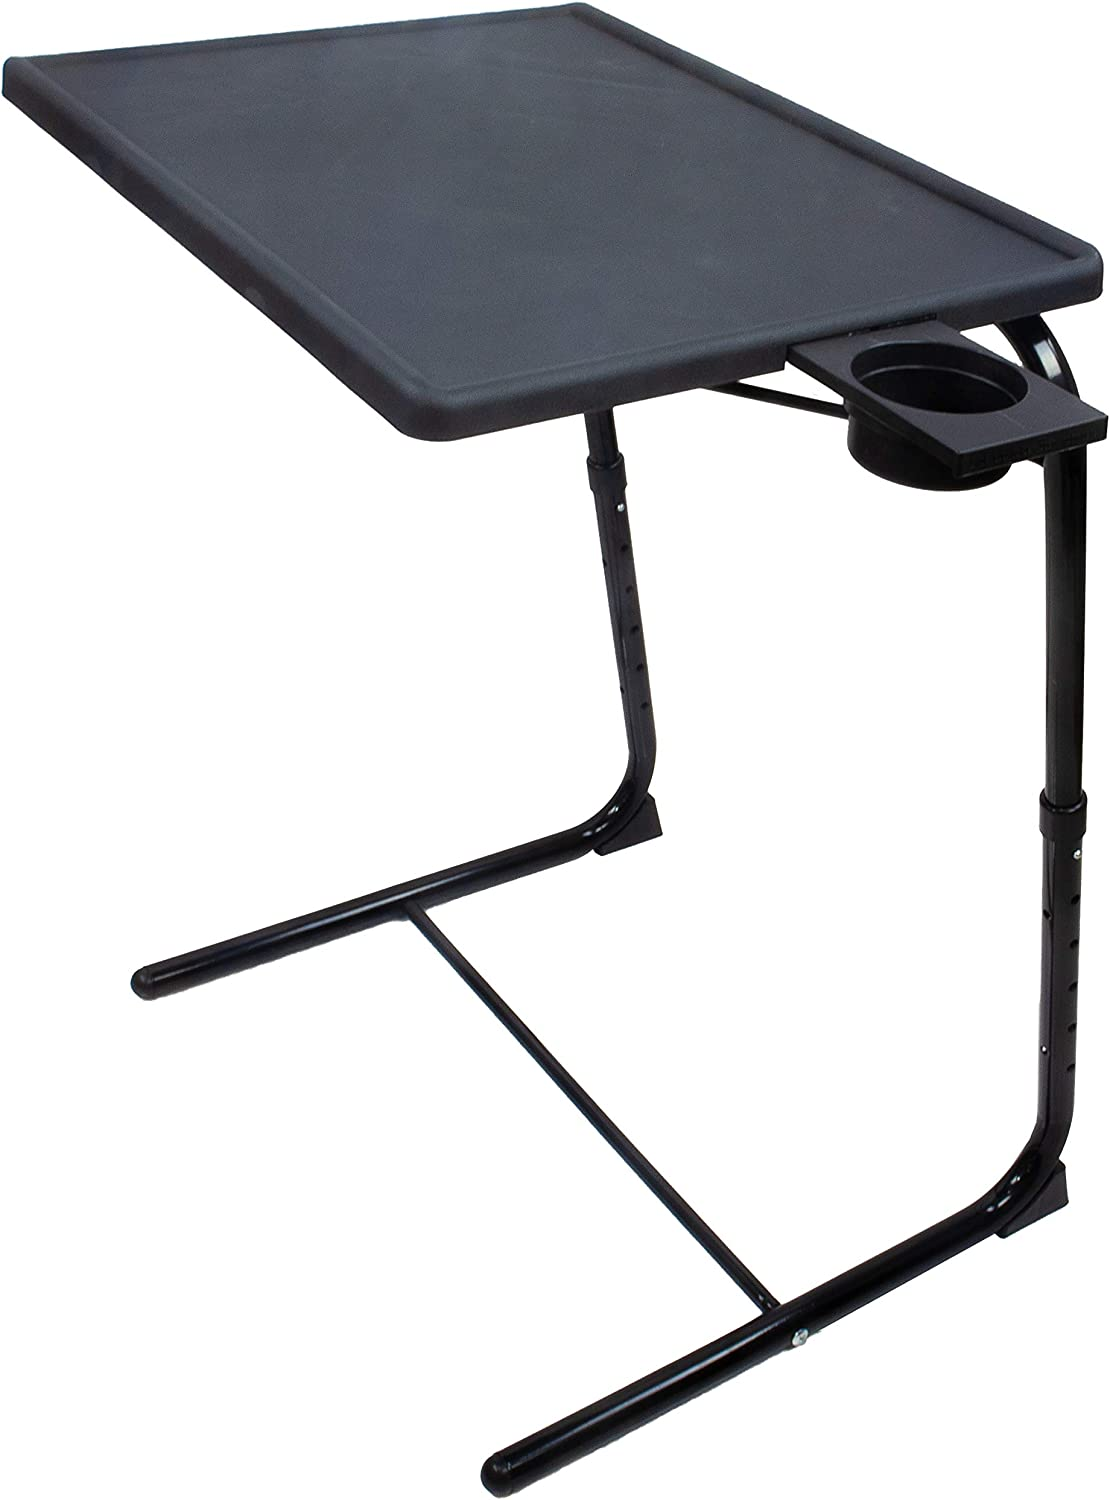 5 STAR SUPER DEALS Portable Foldable TV Tray Table Deluxe - Laptop, Eating, Drawing Tray Table Stand with Adjustable Tray with Sliding Adjustable Cup Holder (Black)